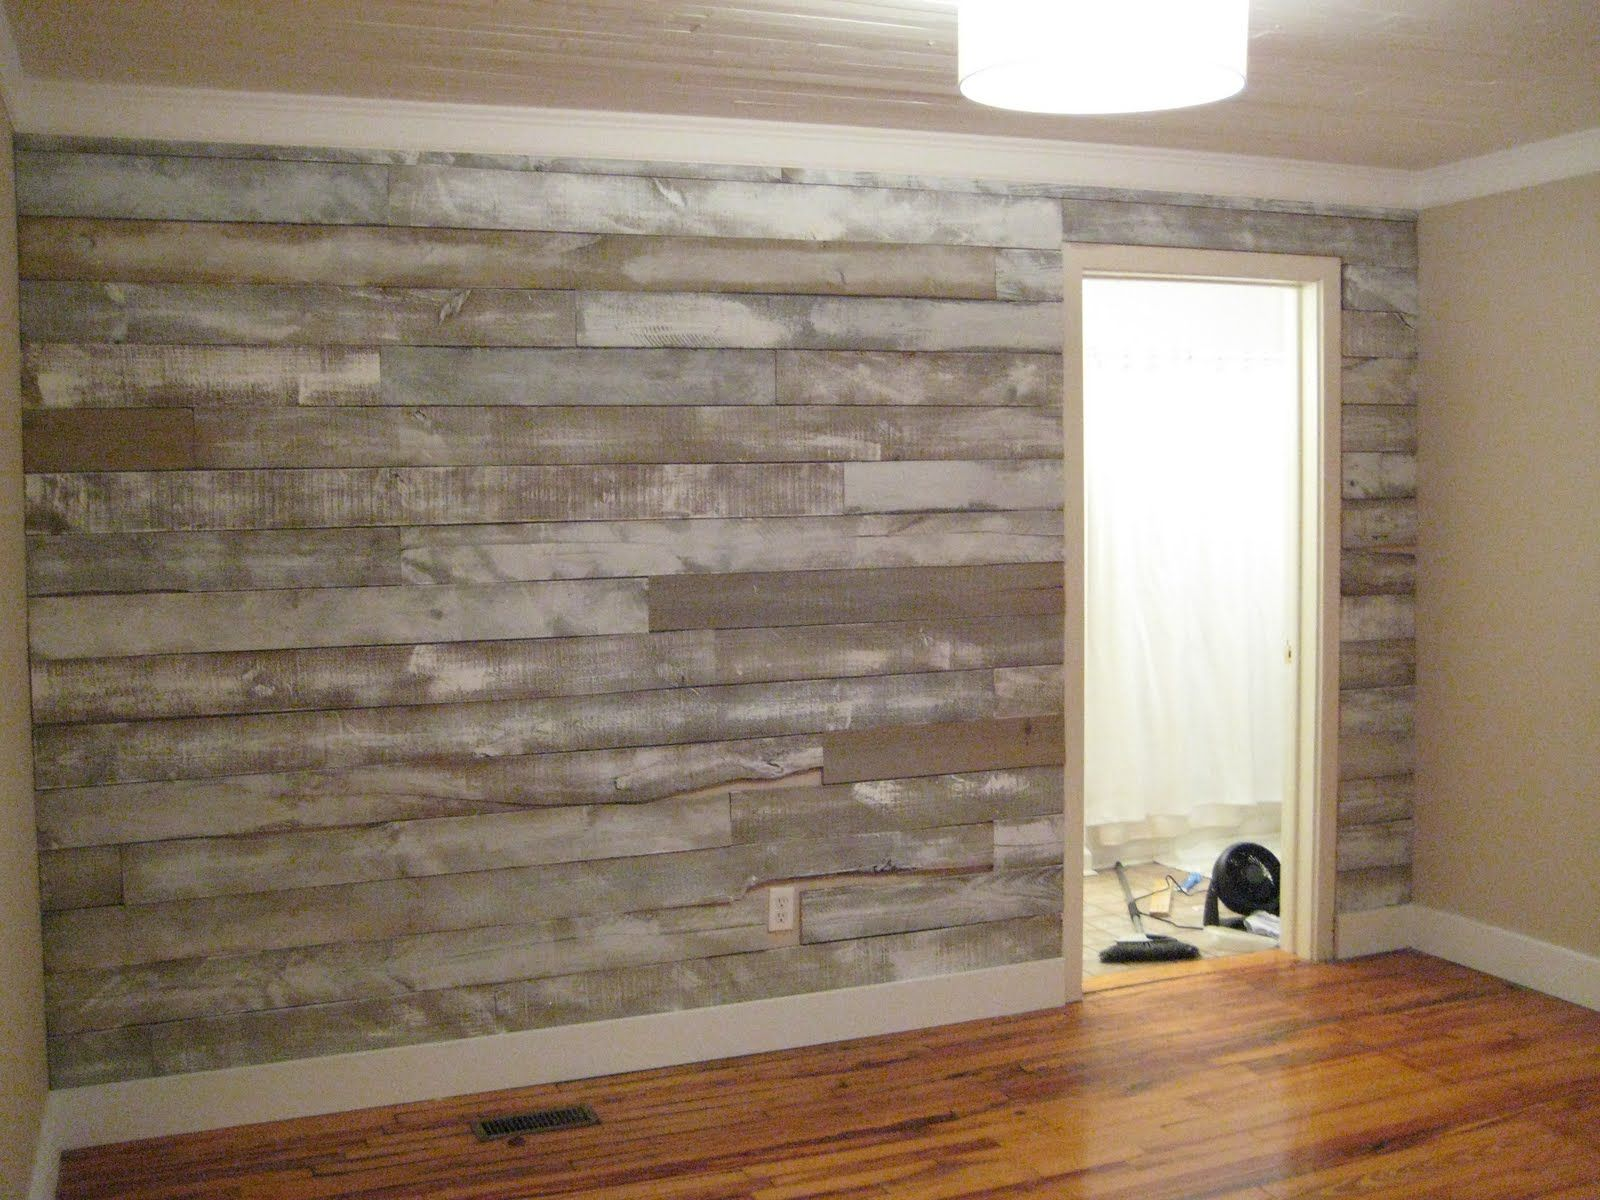 Wood Designs For Walls wooden walls i have so much wood scraps from projects we are doing i Bedroom Accent Walls